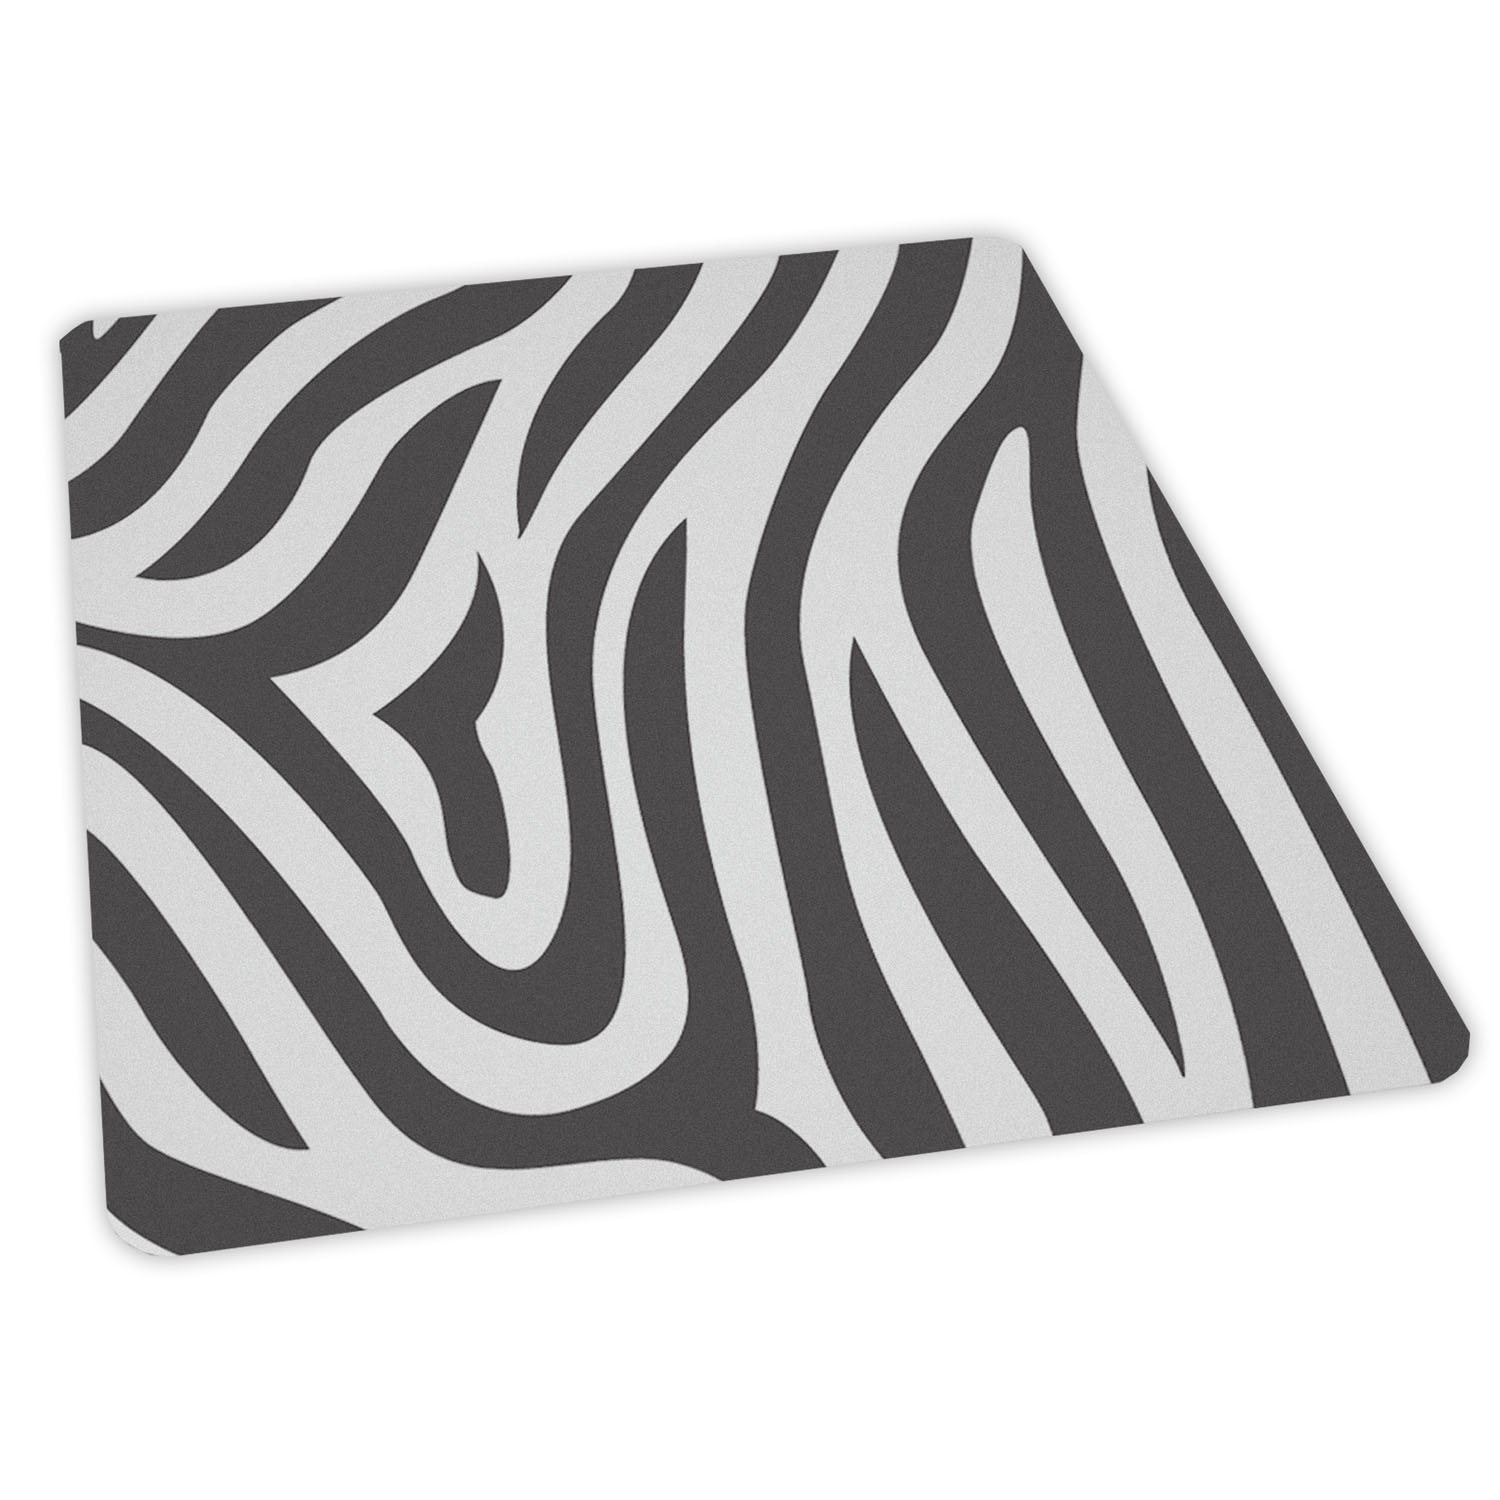 ES Robbins Trendsetter Rectangle Zebra Printed Office Chair Mat for Low Pile Carpet, 36 by 48-Inch 118750